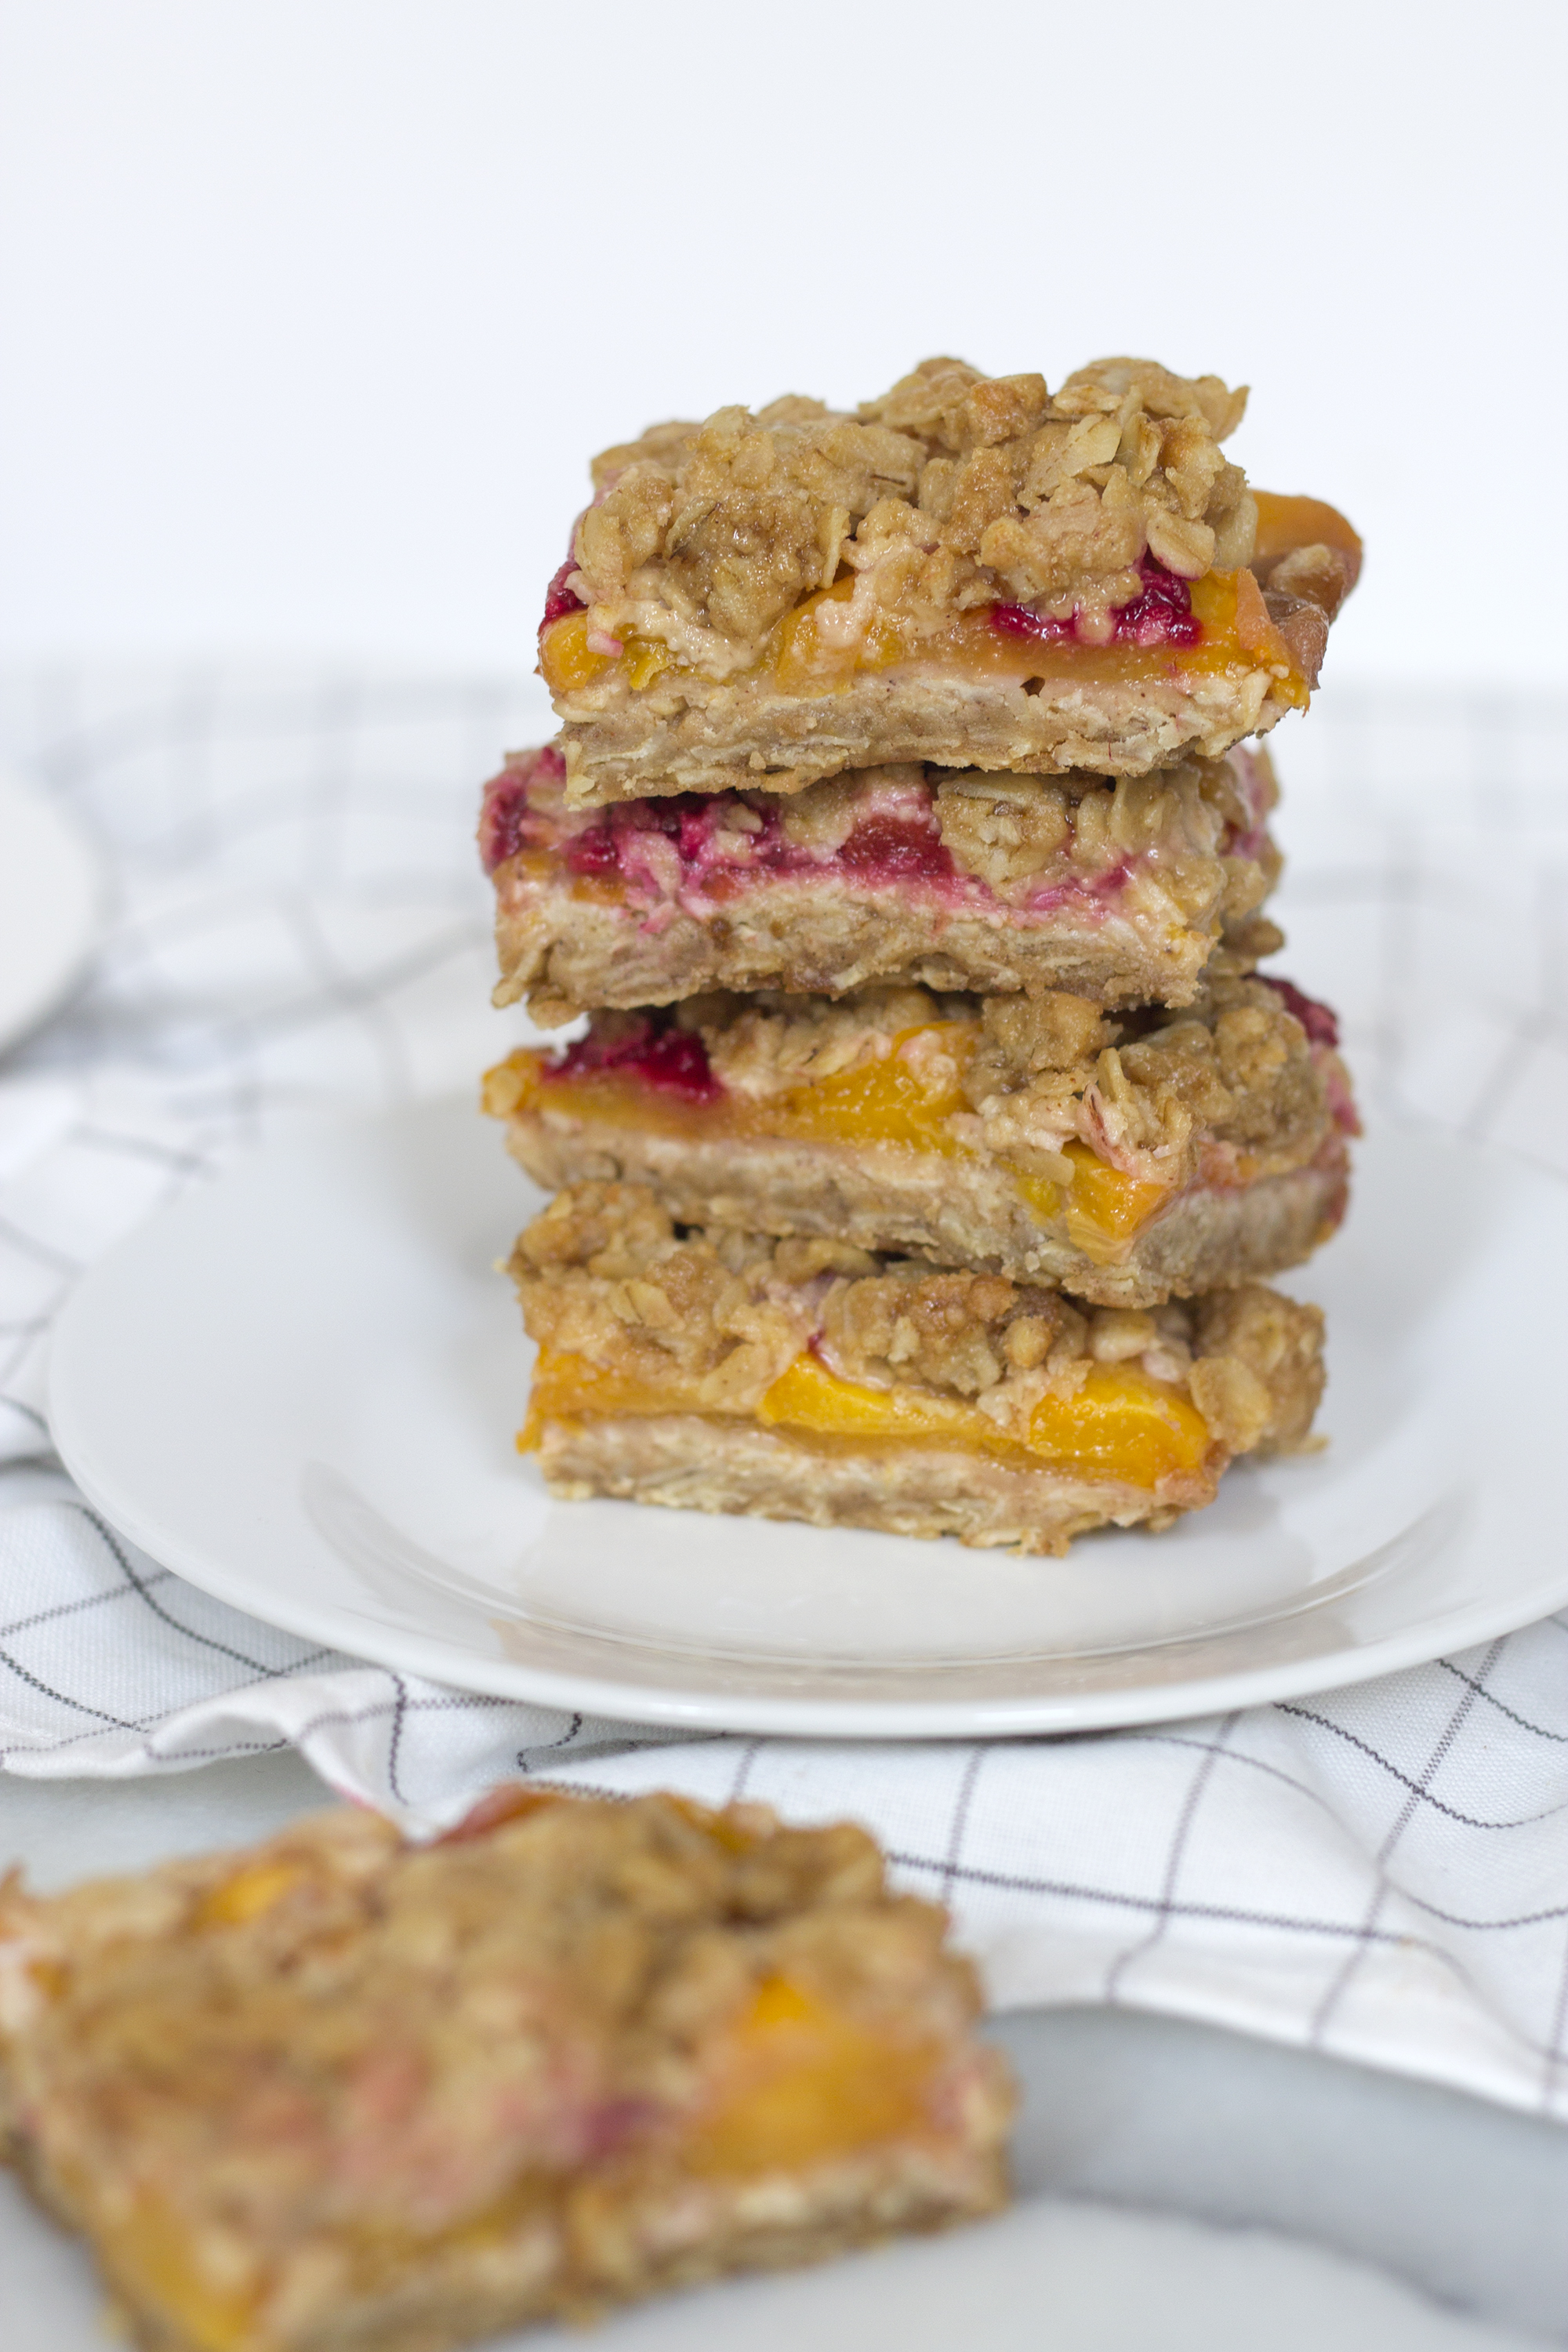 Easy Peach and Raspberry Crumb Bars from Unusuallylovely.com